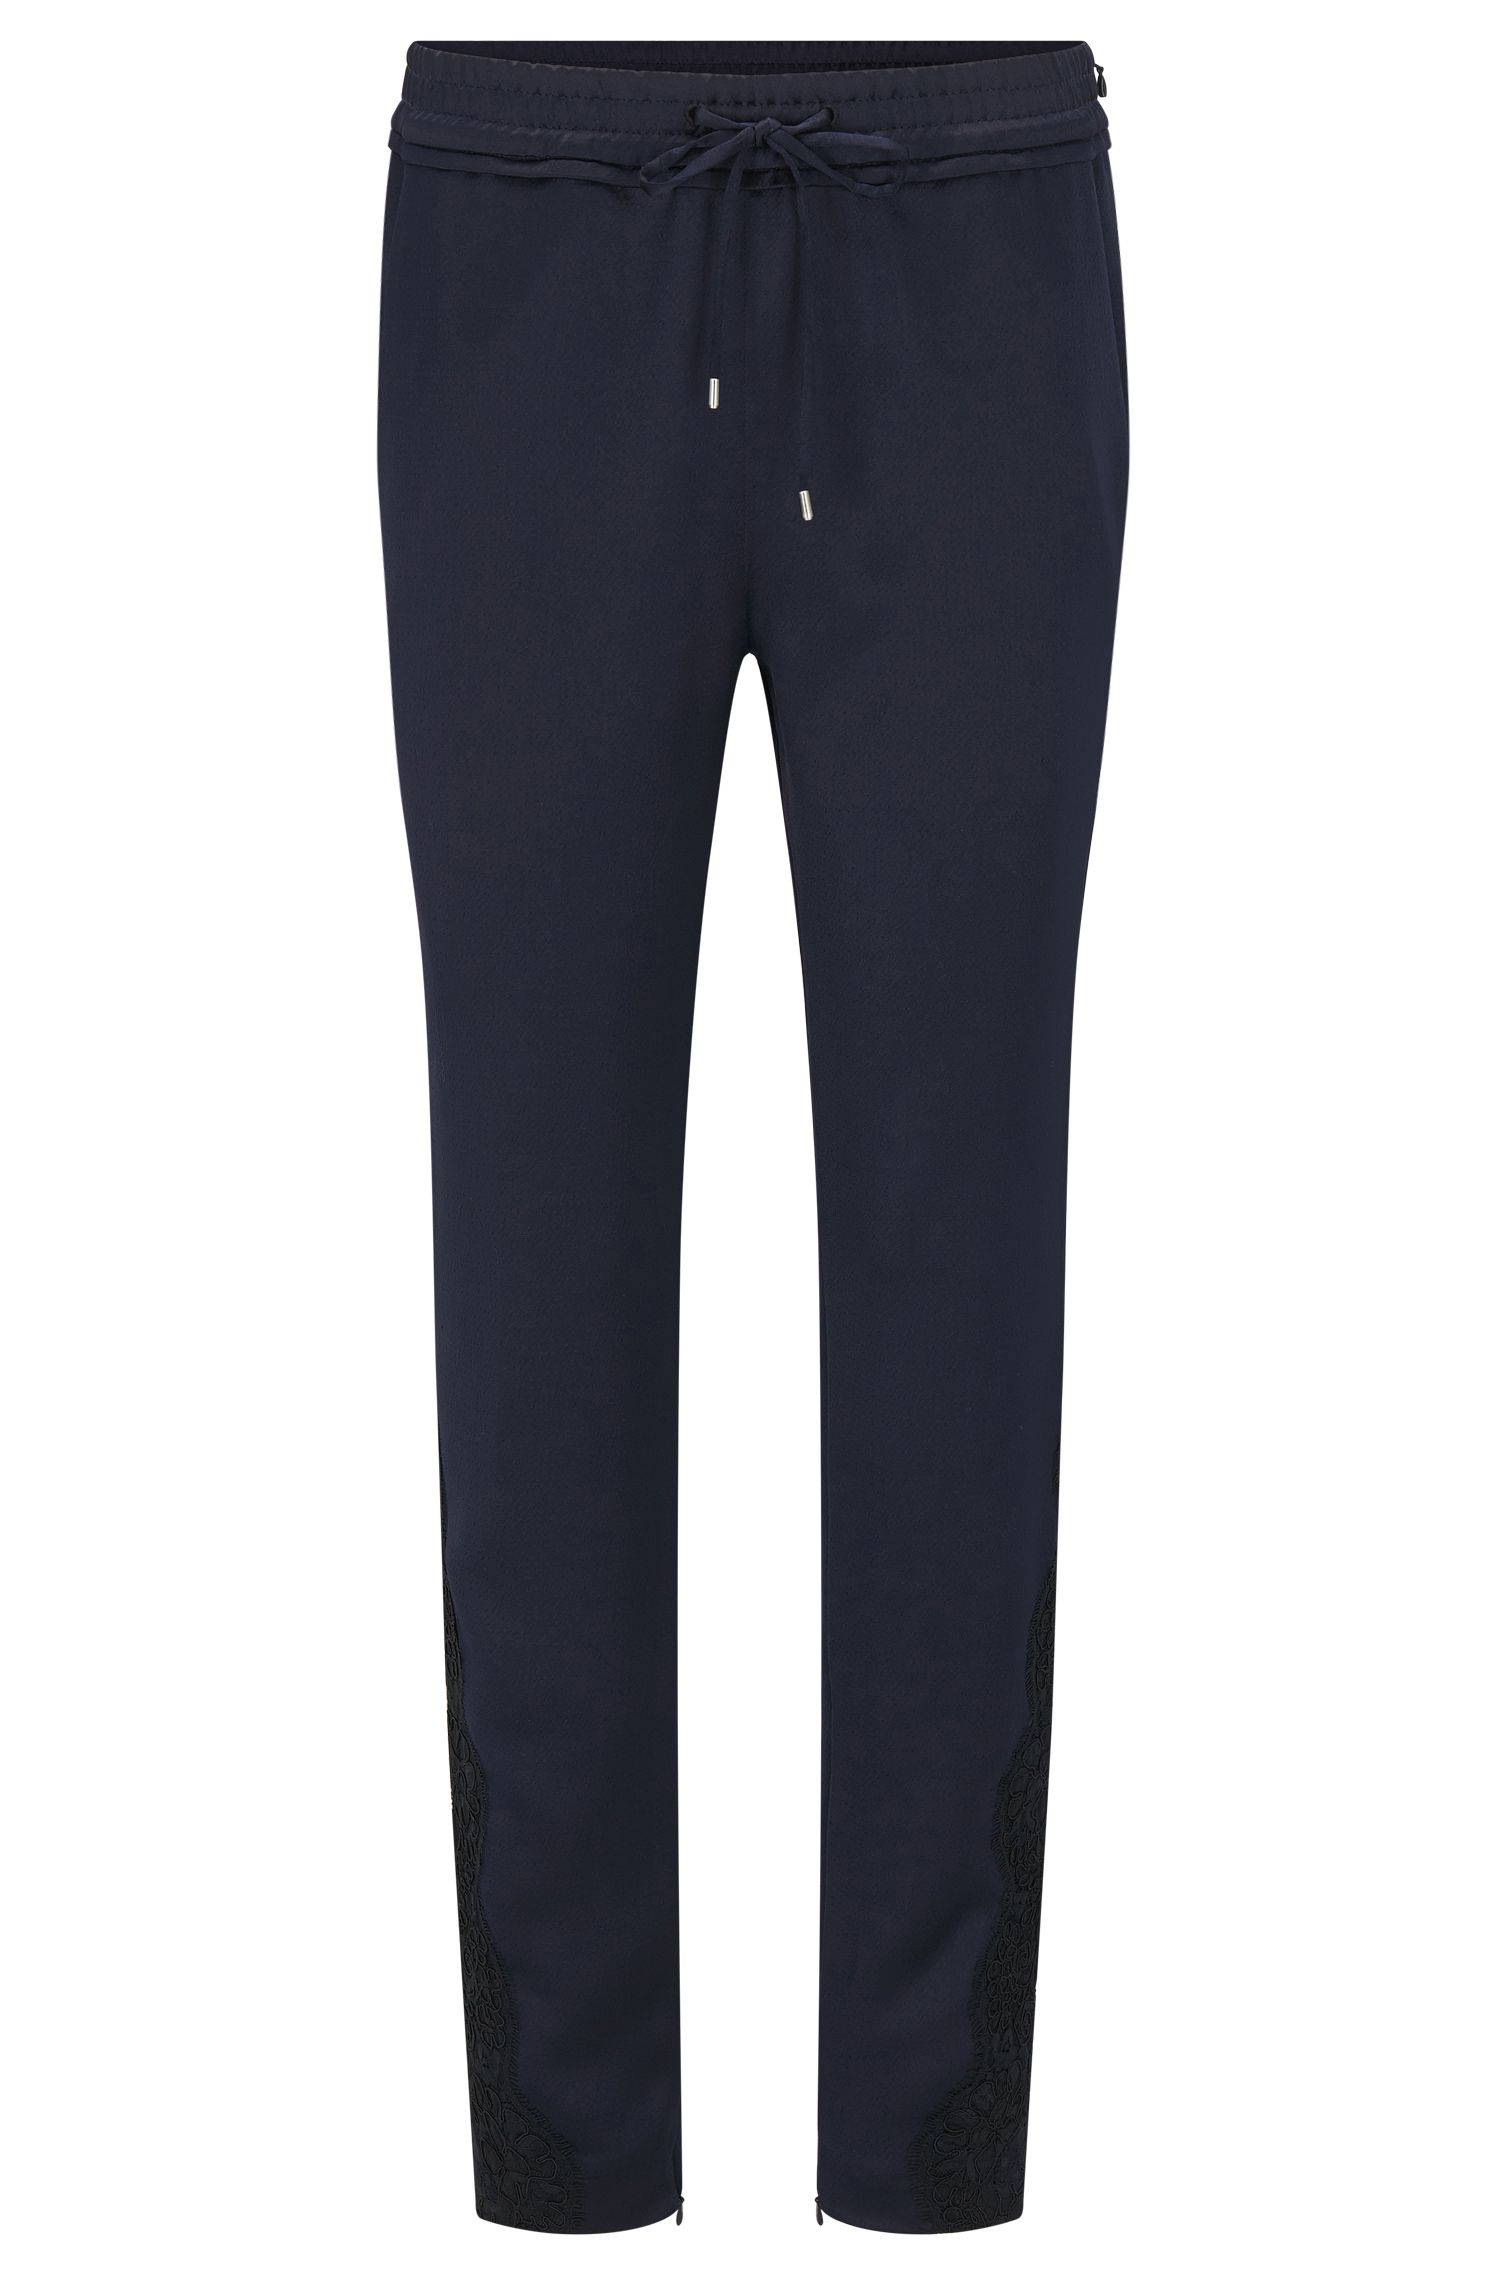 Relaxed-fit jogging trousers with ruffle waistband